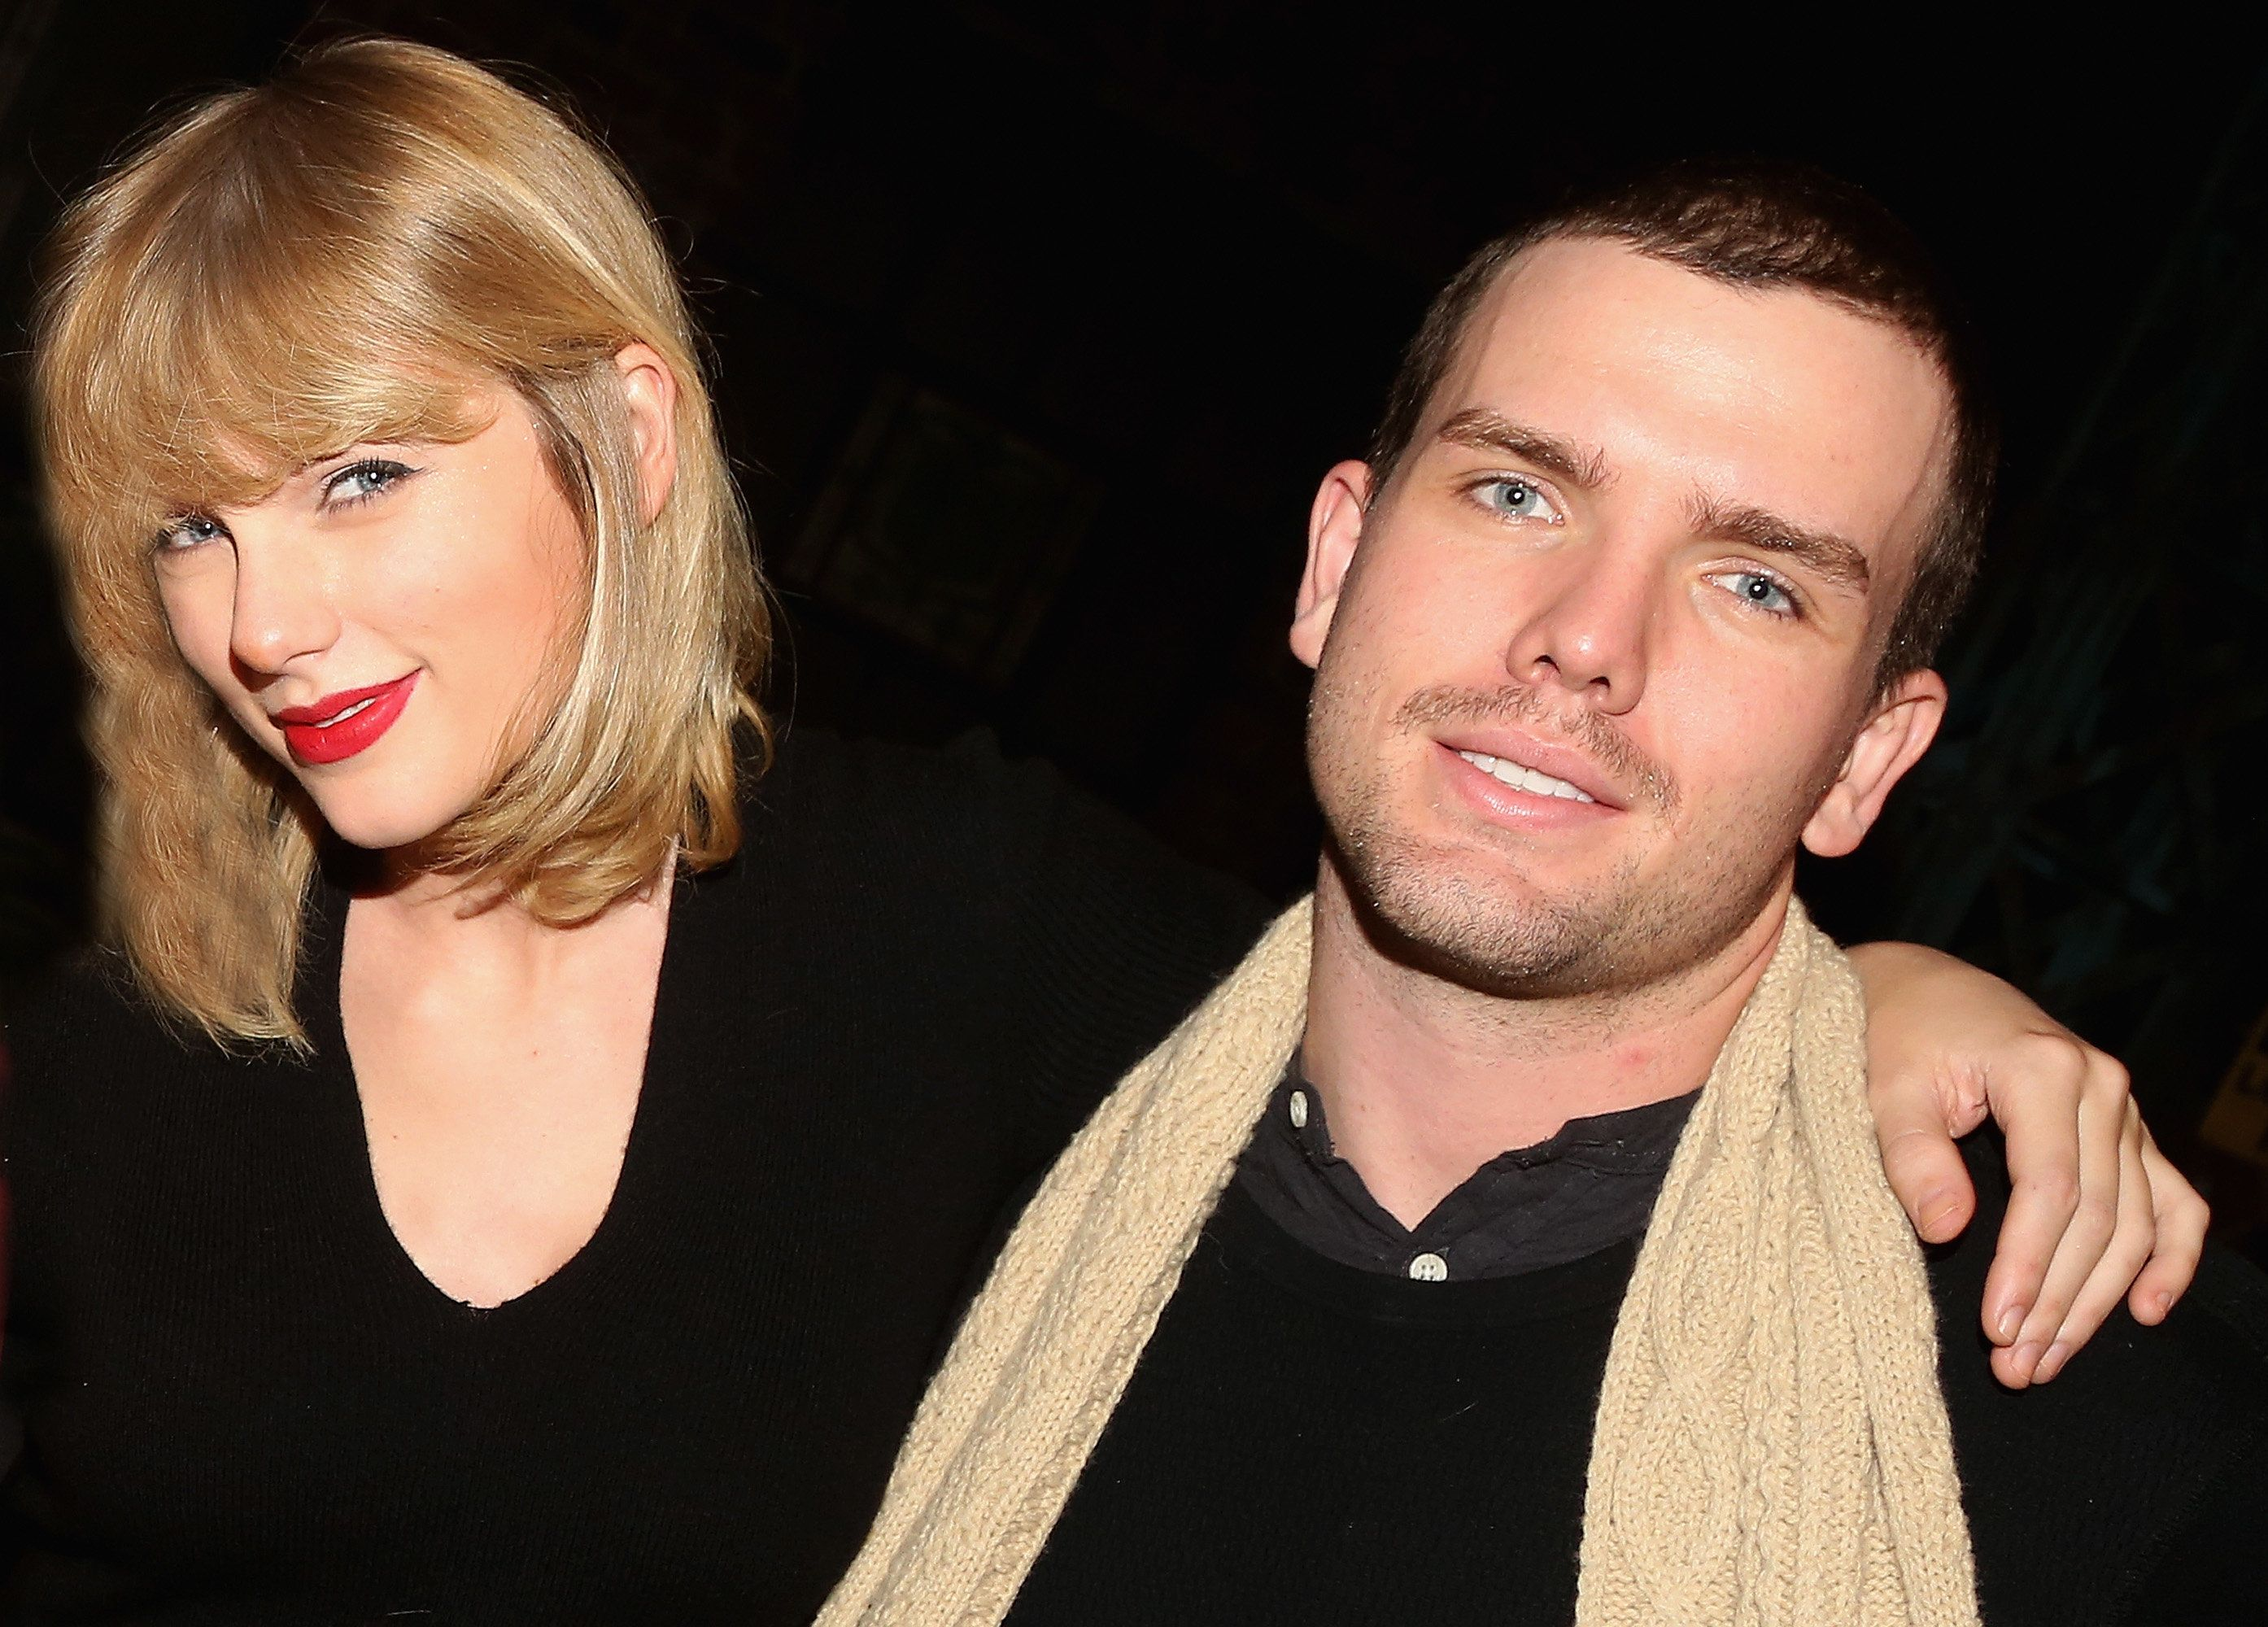 NEW YORK, NY - NOVEMBER 23:  (EXCLUSIVE COVERAGE) Taylor Swift and brother Austin Swift poses backstage with the cast at the hit musical 'Kinky Boots' on Broadway at The Al Hirschfeld Theater on November 23, 2016 in New York City.  (Photo by Bruce Glikas/Bruce Glikas/Getty Images)